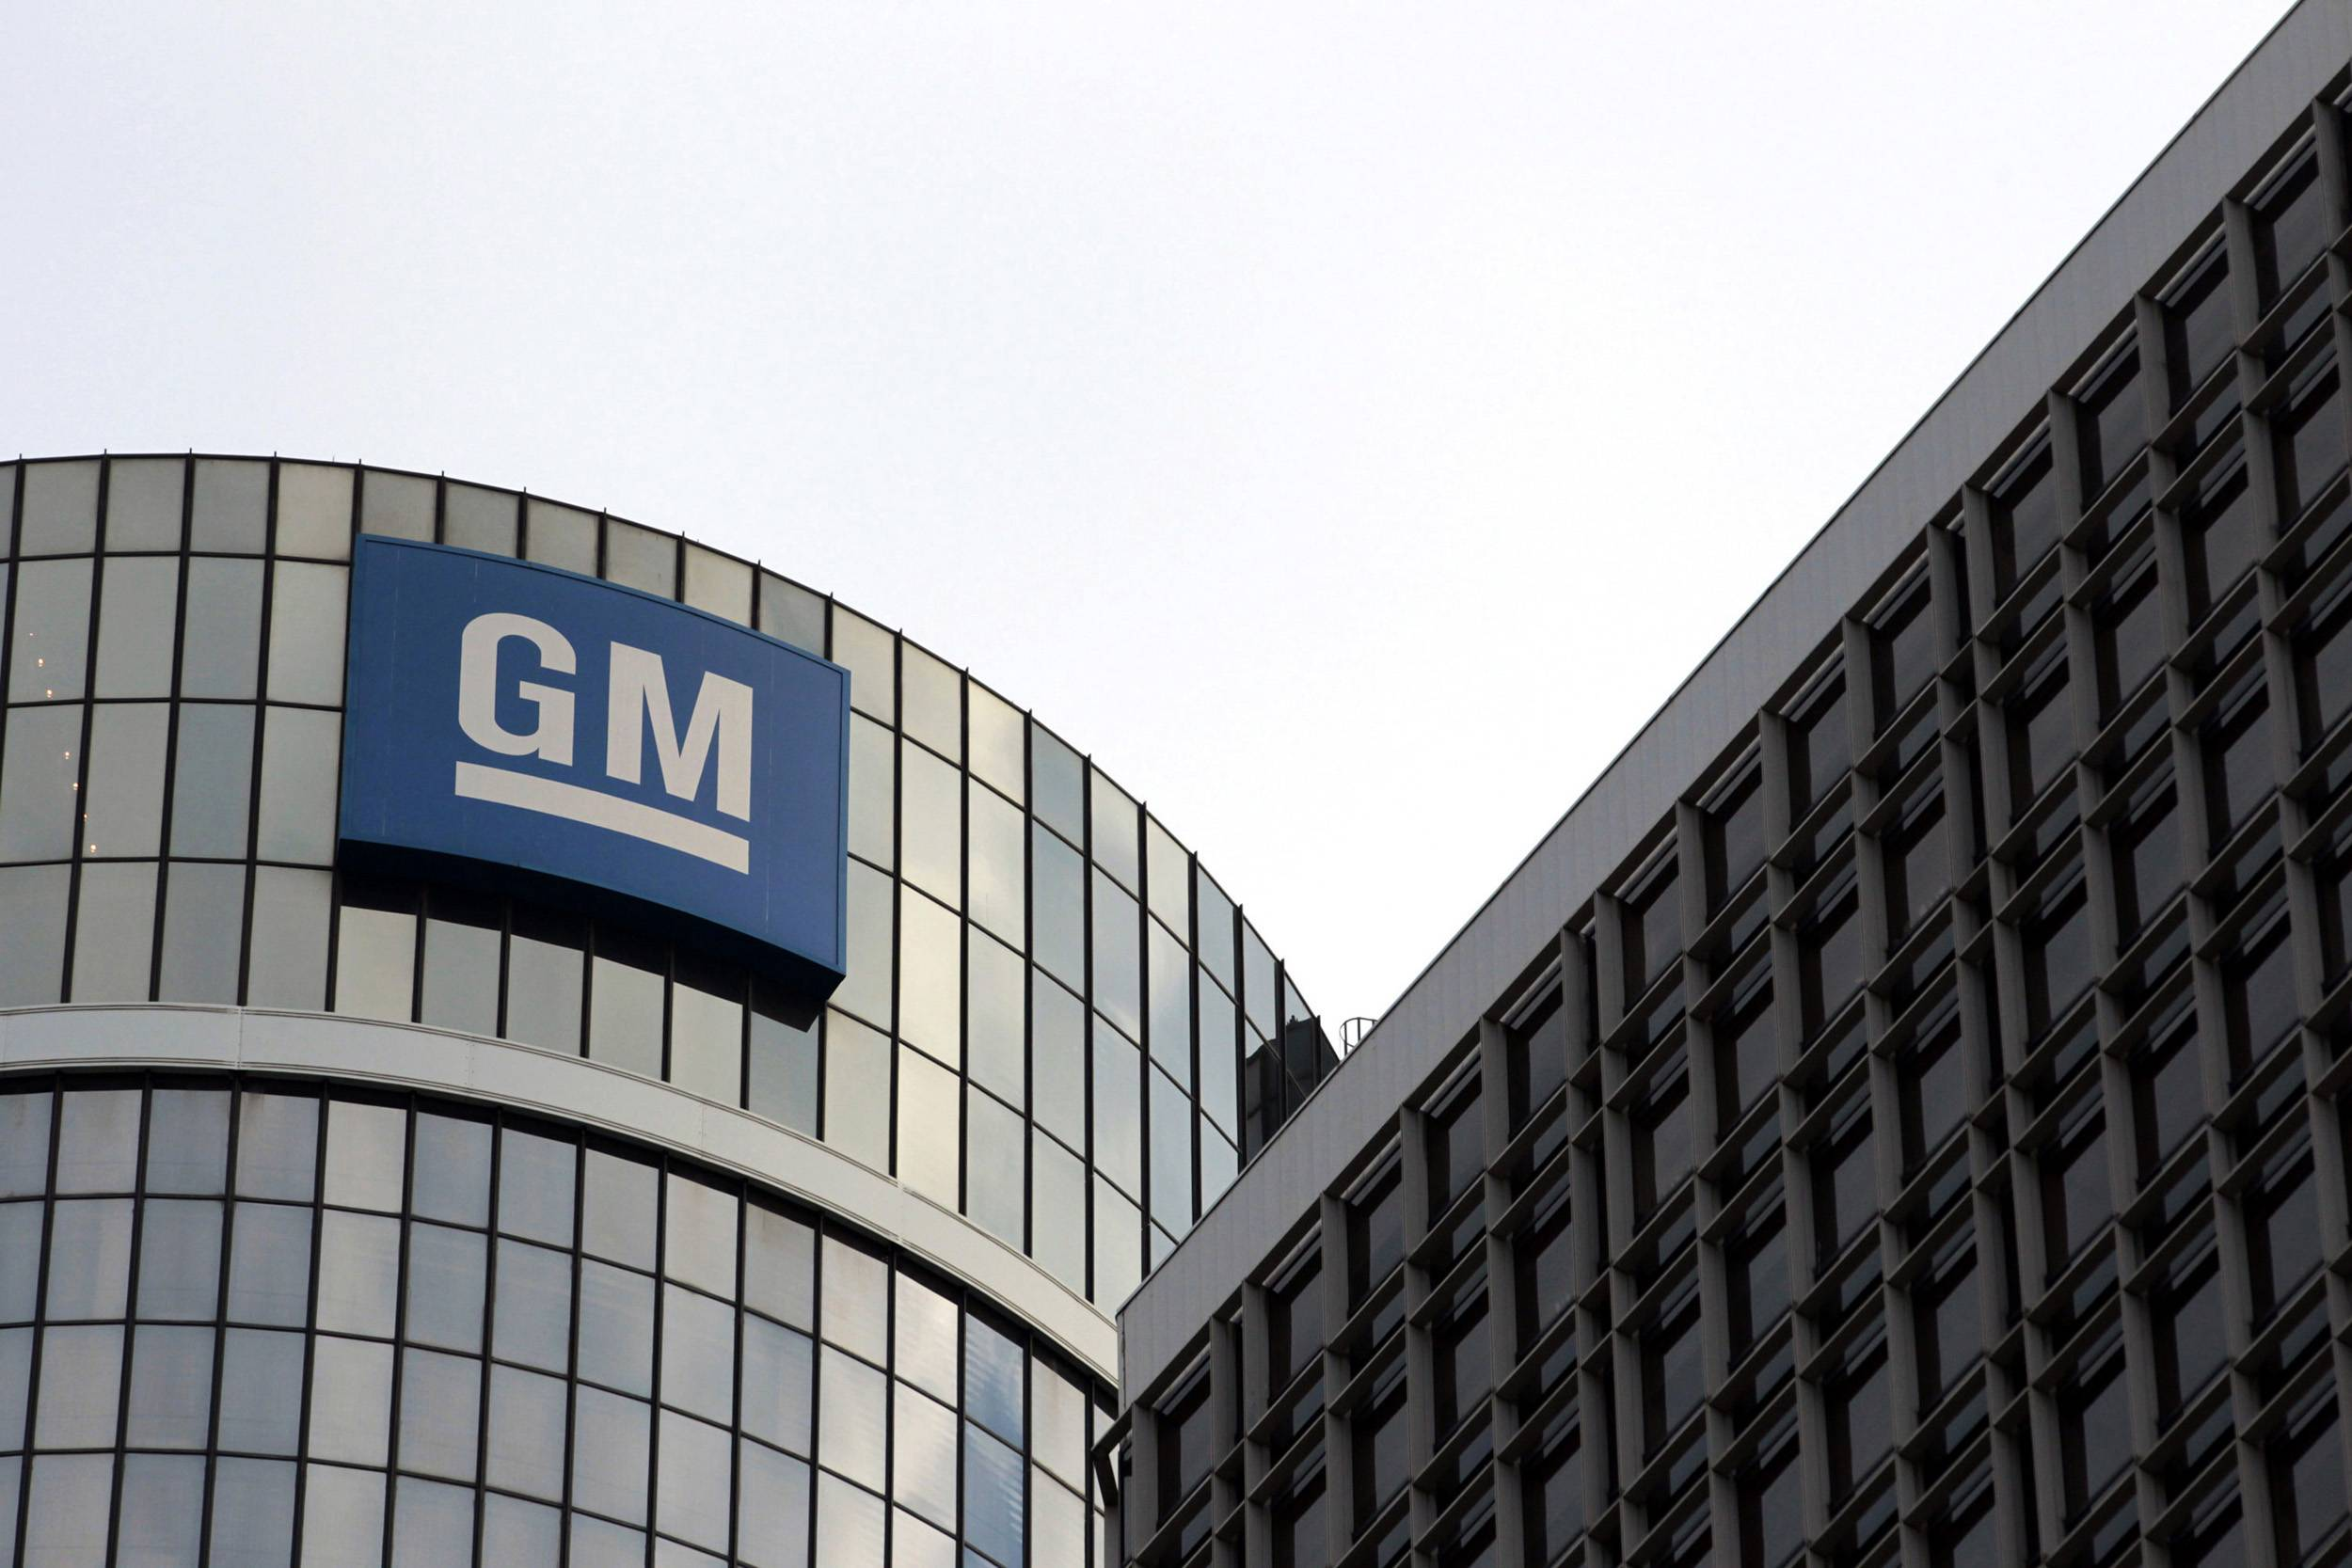 DETROIT — General Motors is replacing the executives in charge of communications and human resources as it struggles with a string of embarrassing recalls that have led to congressional hearings and federal investigations. Communications chief Selim Bingol and human resources head Melissa Howell are leaving the company to pursue other interests, the company said Monday in a statement.